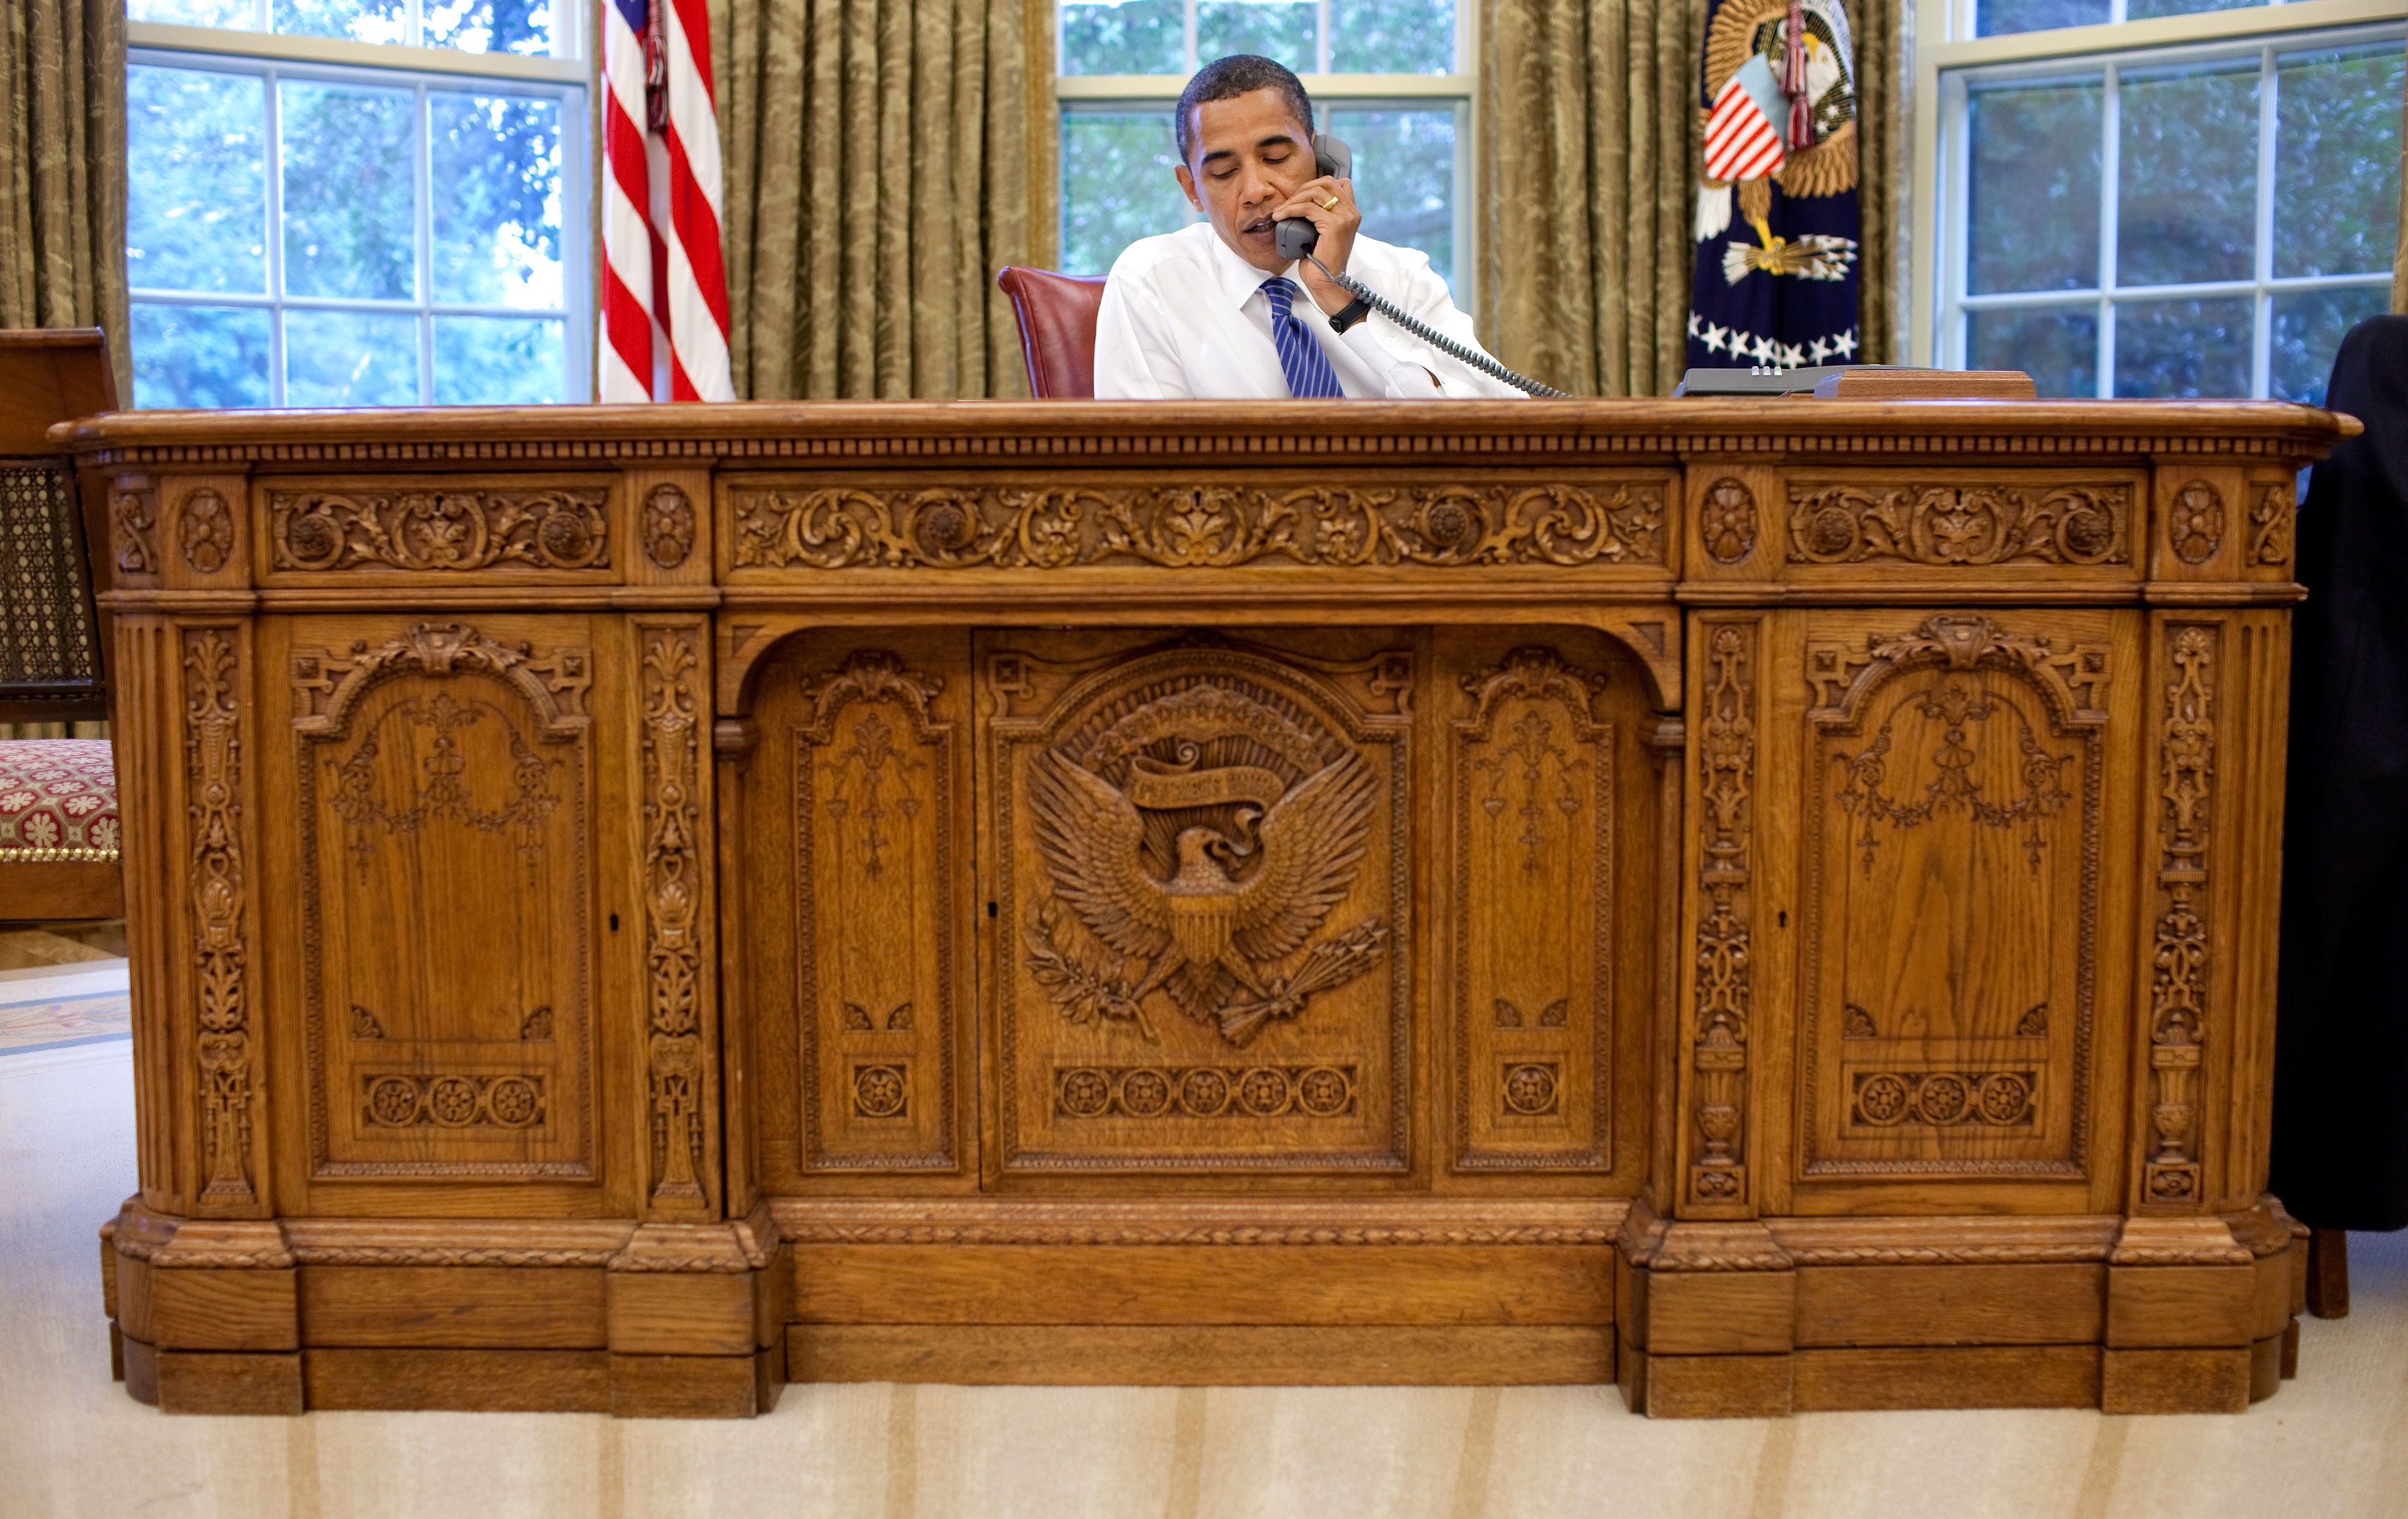 Resolute desk - Wikiwand